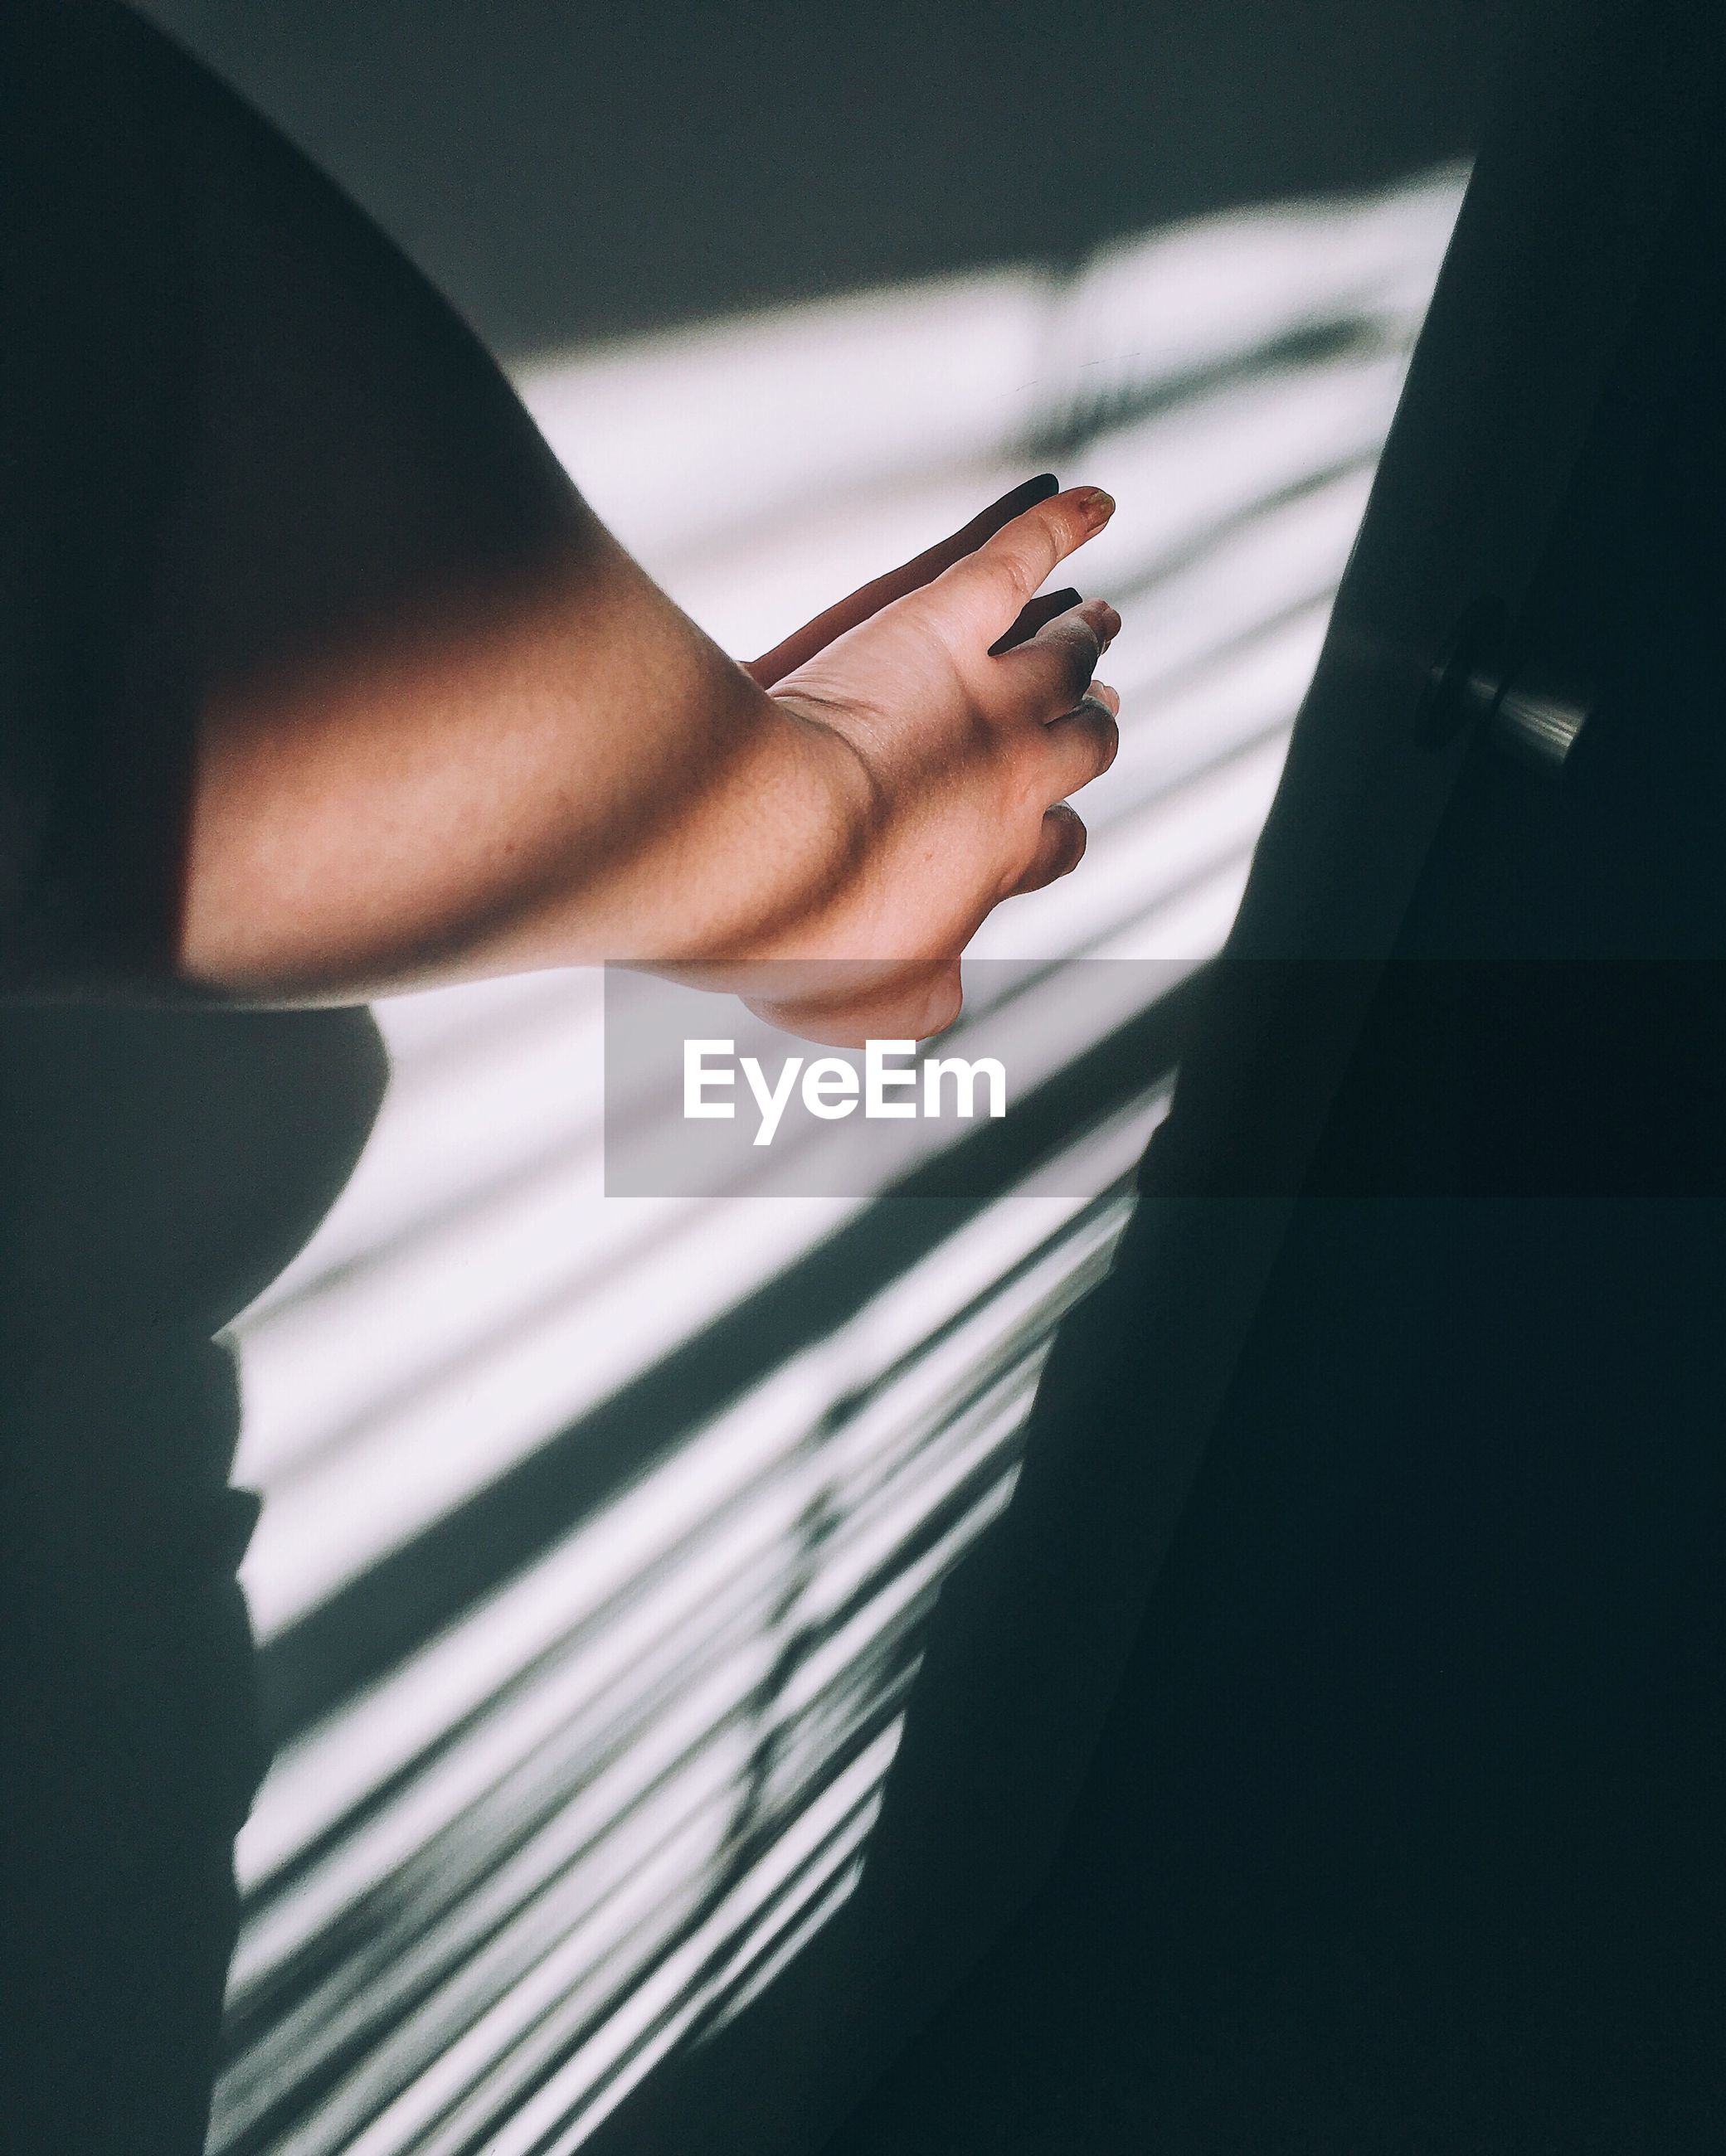 Sunlight falling on hand of person